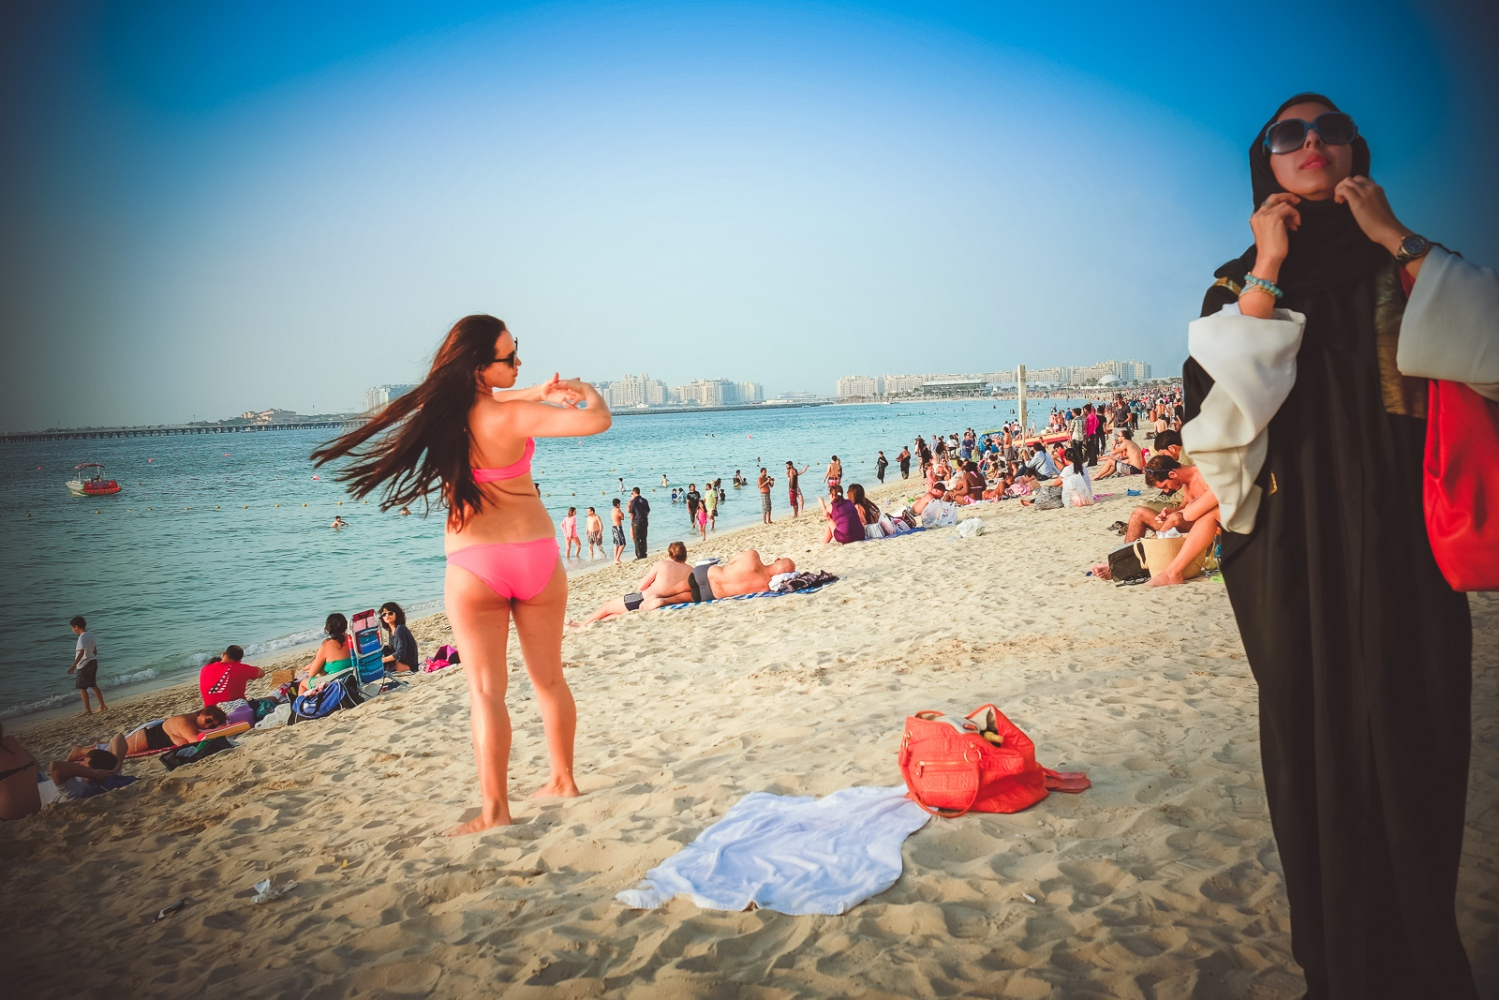 Dubai, UAE, March 21,2014: 'Culture Clash'. A beach scene at Dubai's JBR beach.